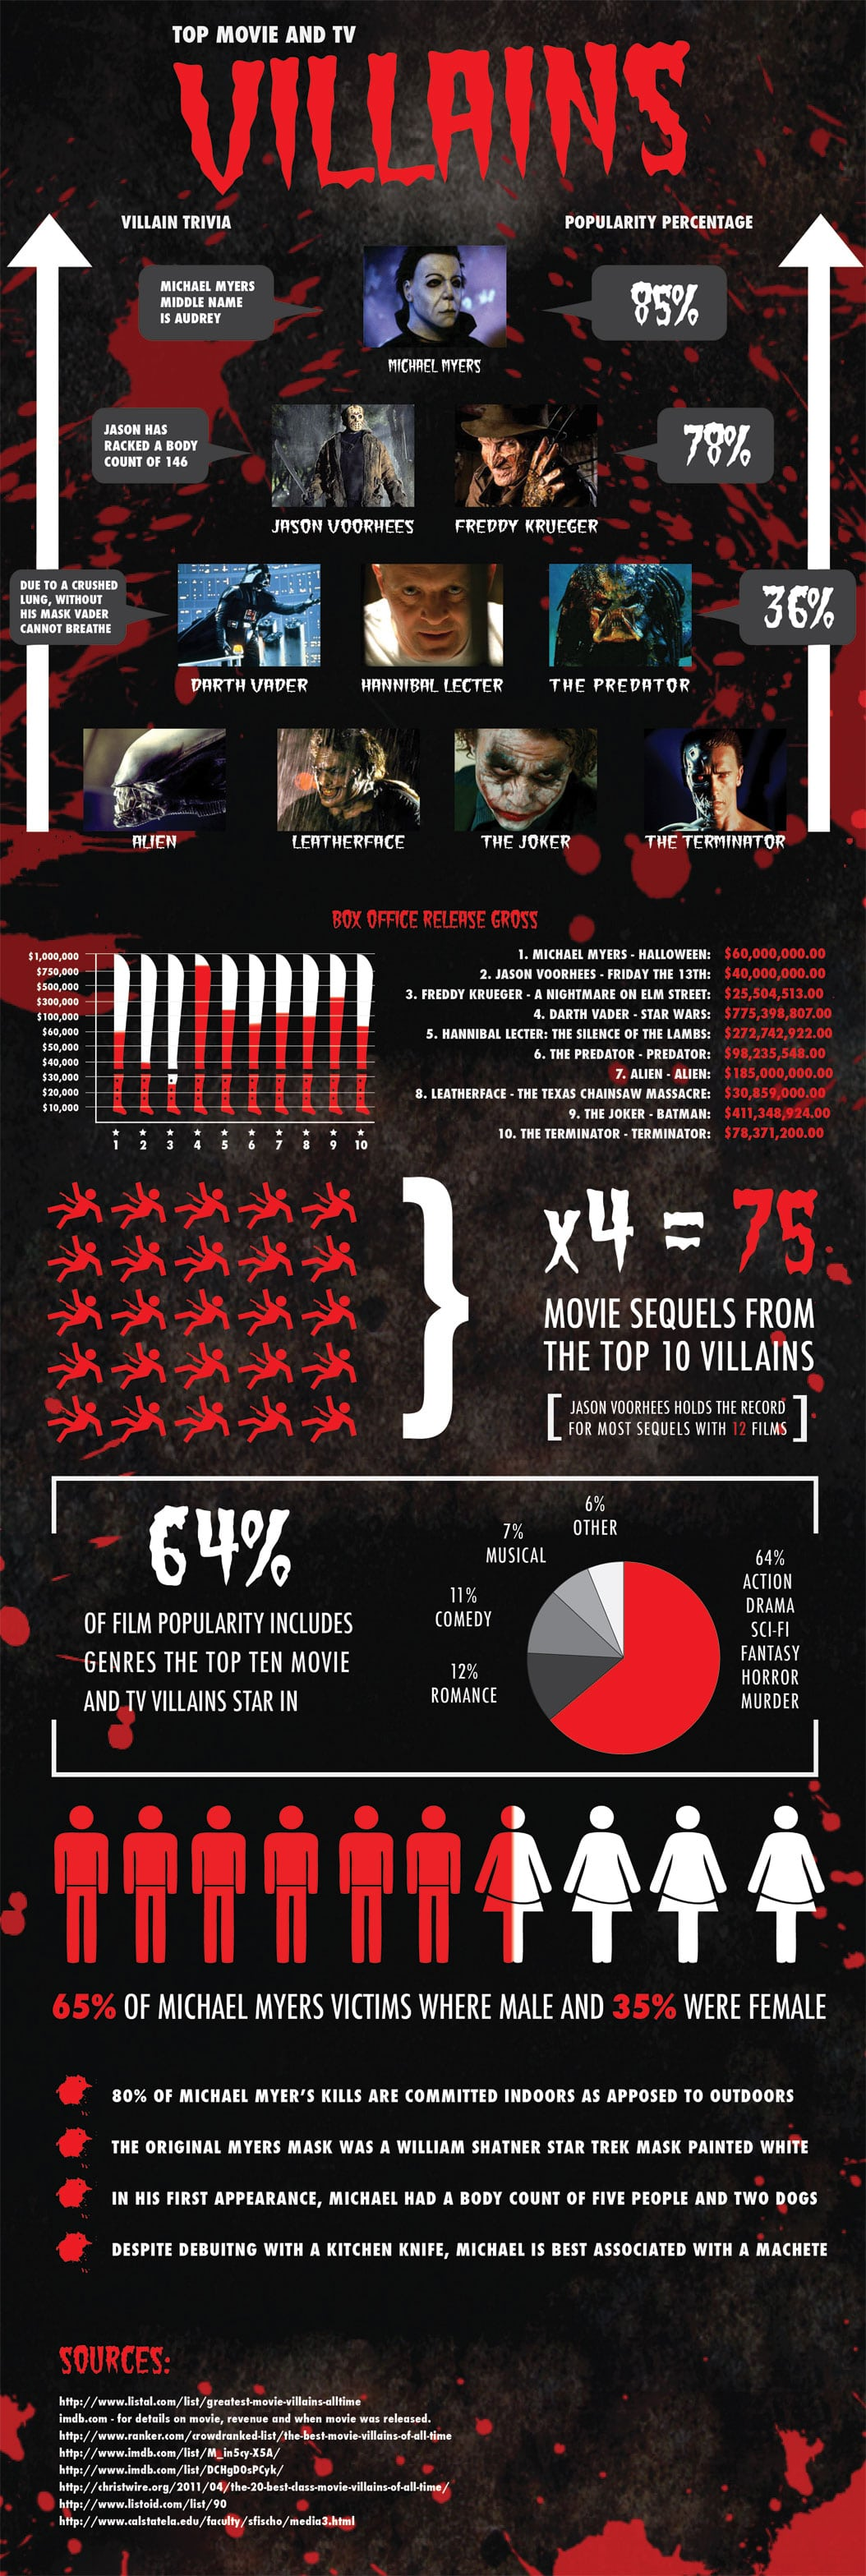 Top Movie and TV Villains